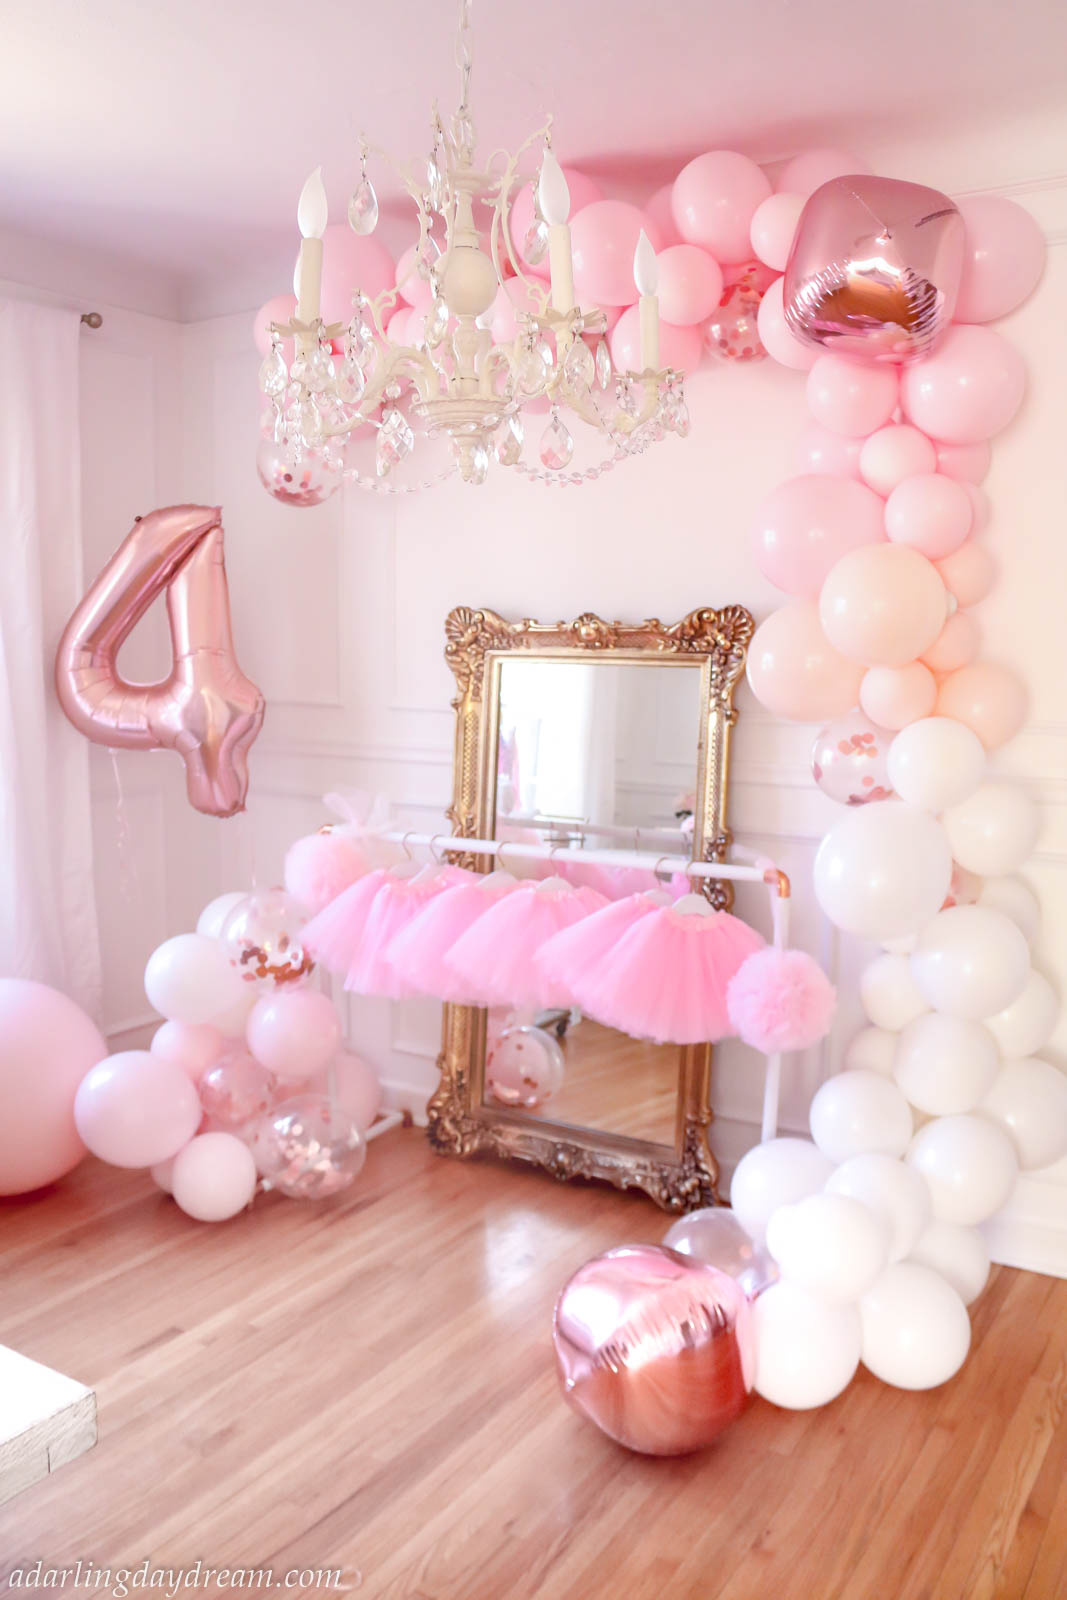 Bella-s-forth-birthday-party-ballerina-unicorn-43